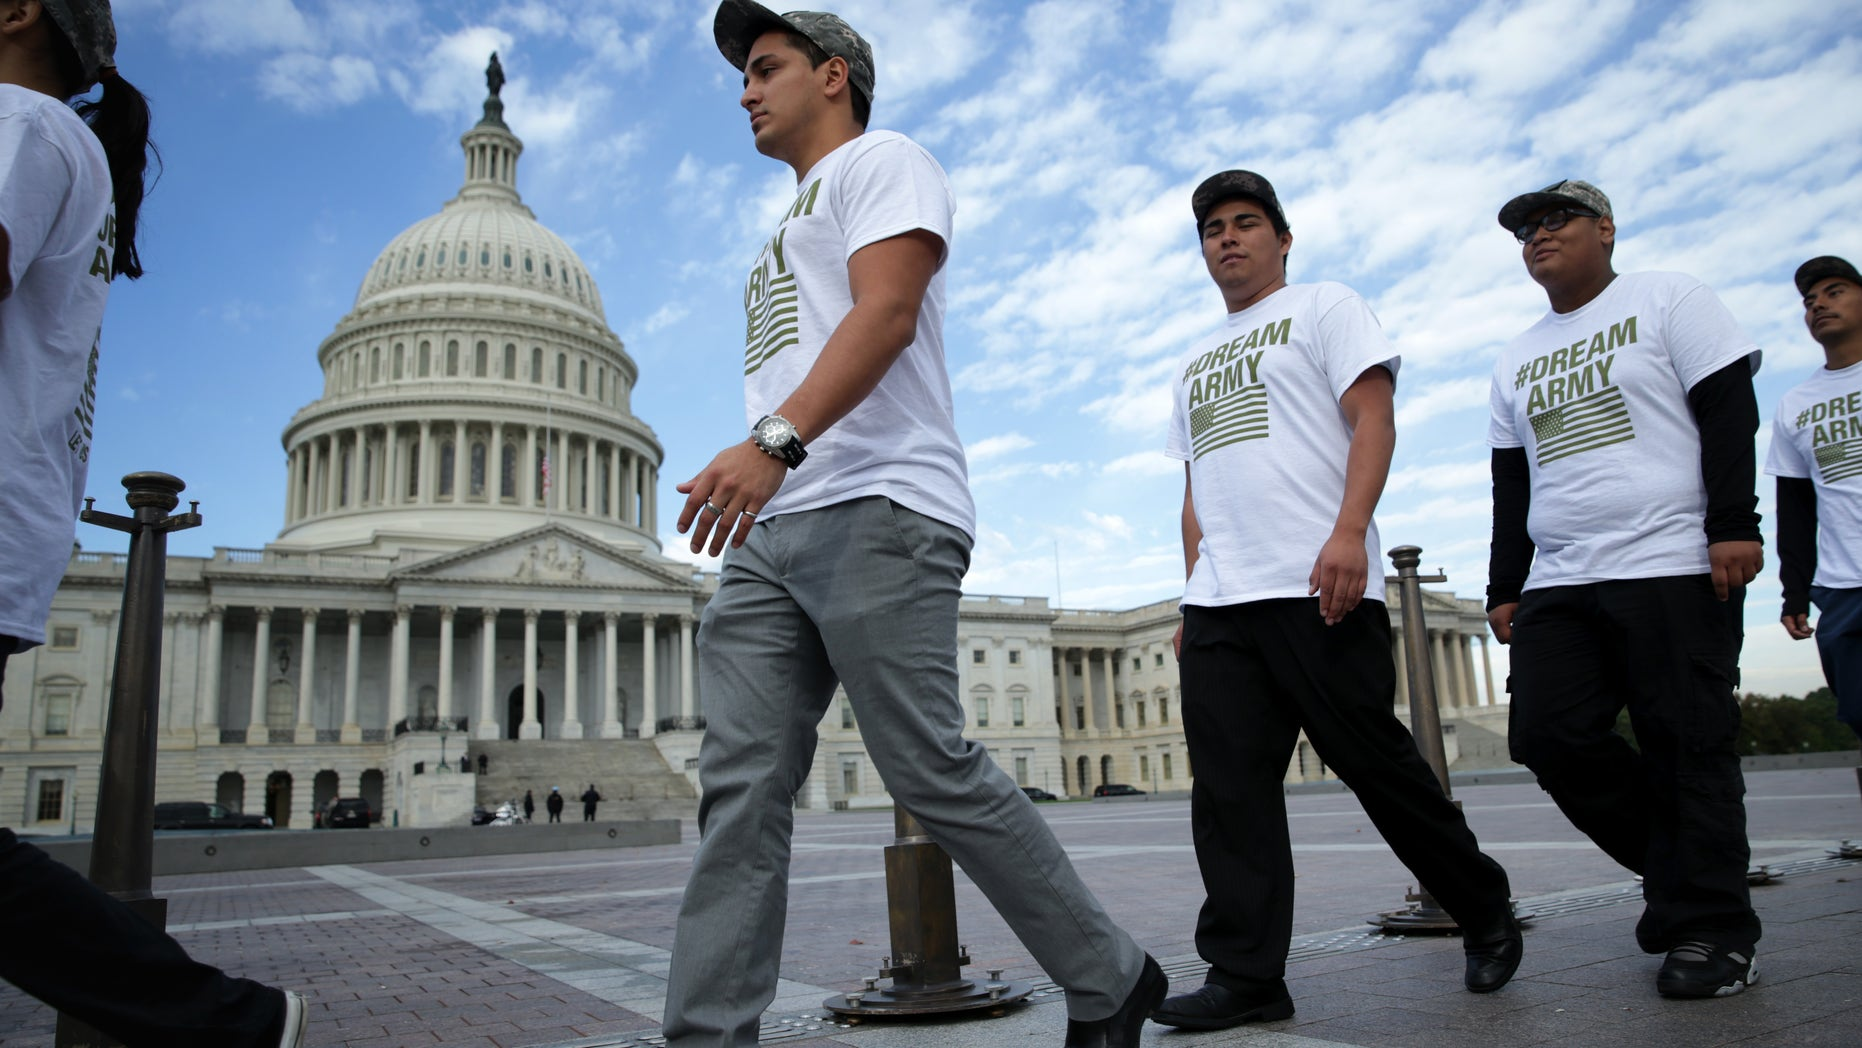 """WASHINGTON, DC - OCTOBER 23:   (L-R) Lizardo Buleje of San Antonio, Texas, Jorge Tellez of Parker, Colorado, Anthony Corona of Staten Island, New York, and Armando Jimenez of Allen Town, Pennsylvania, march in front of the U.S. Capitol during a rally on immigration reform October 23, 2013 on Capitol Hill in Washington, DC. The Dream Action Coalition held a rally and briefing to discuss """"how the outdated immigration system undermines military readiness, separates military families, and prevents talent from joining its enlisted and officer ranks."""" (Photo by Alex Wong/Getty Images)"""